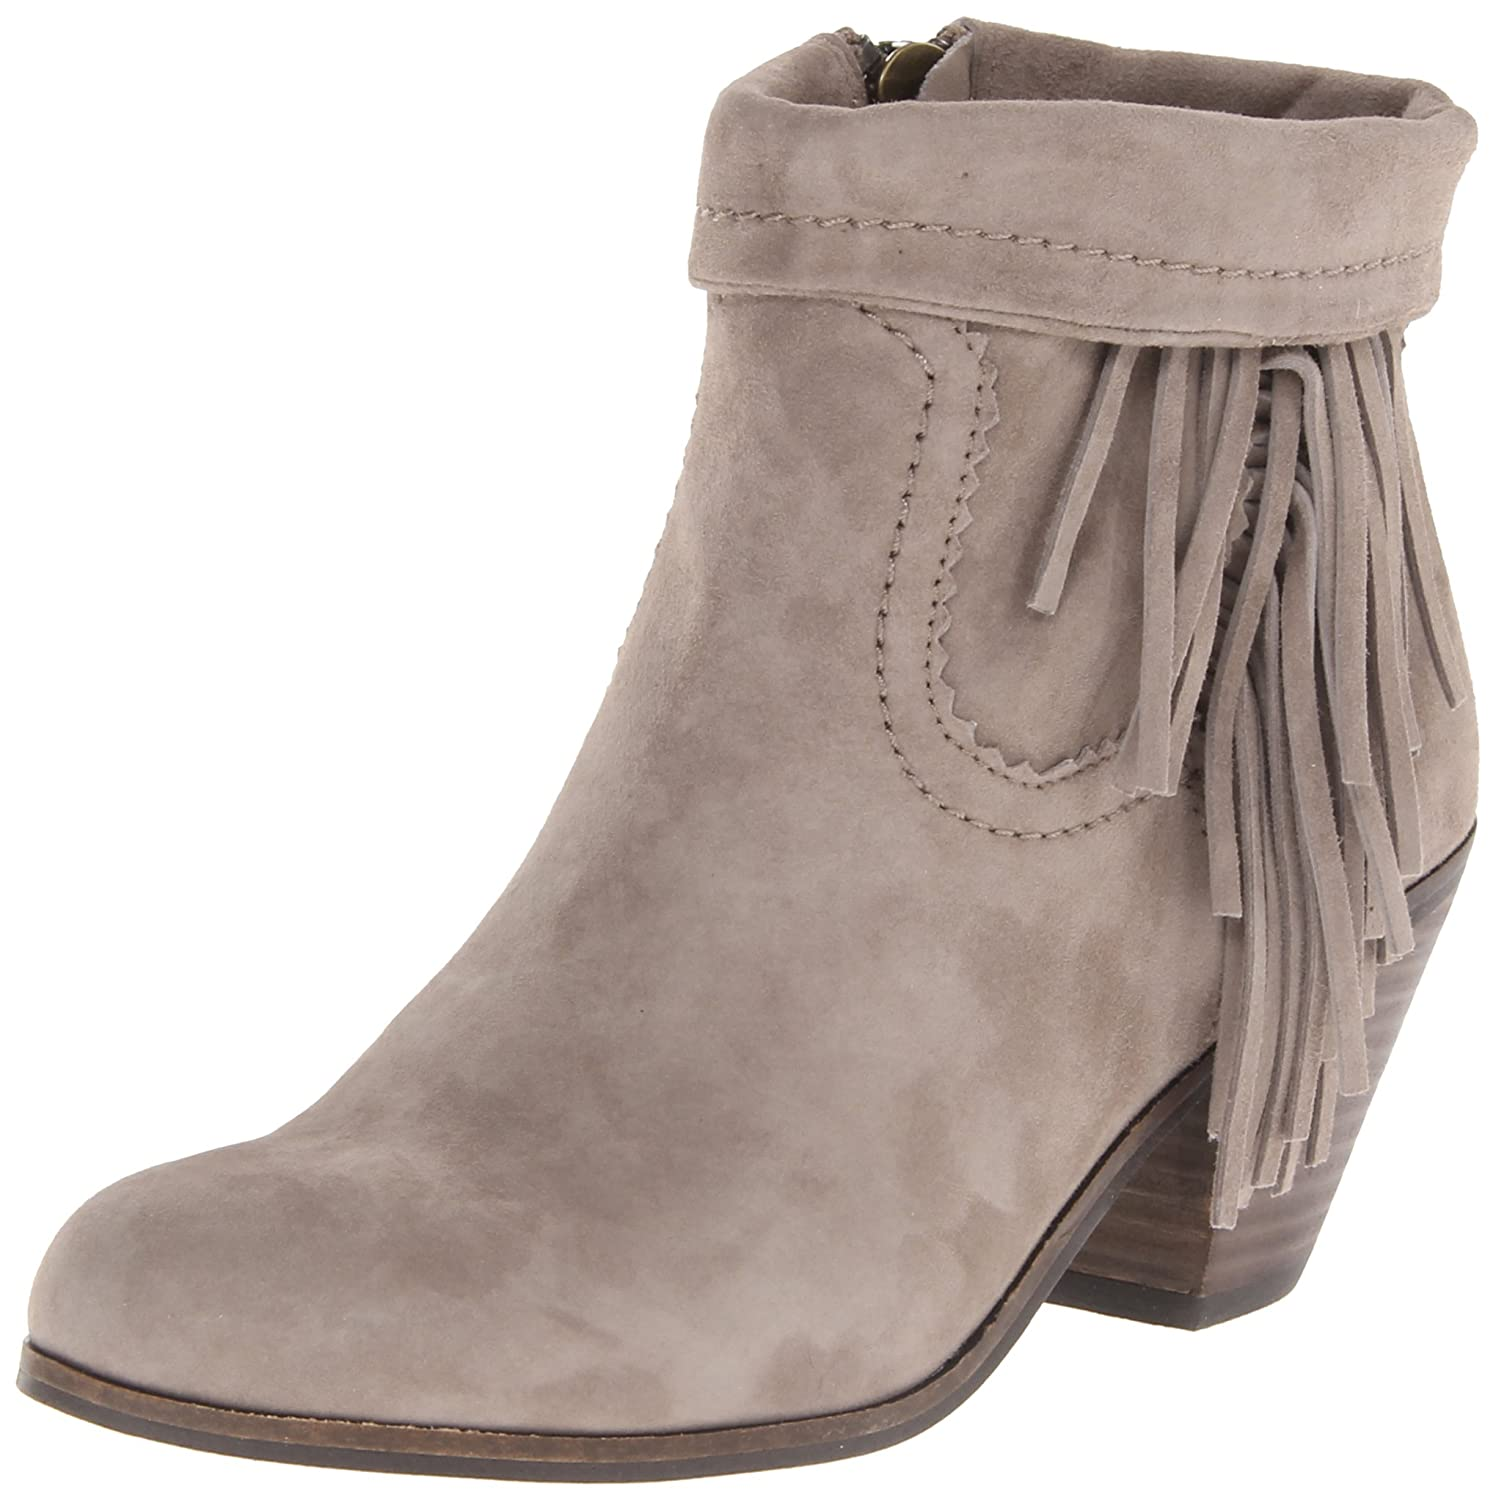 Sam Edelman Women's Louie Fringe-Trimmed Ankle Boot B005LC7Z4Q 11 B(M) US|Tan Suede